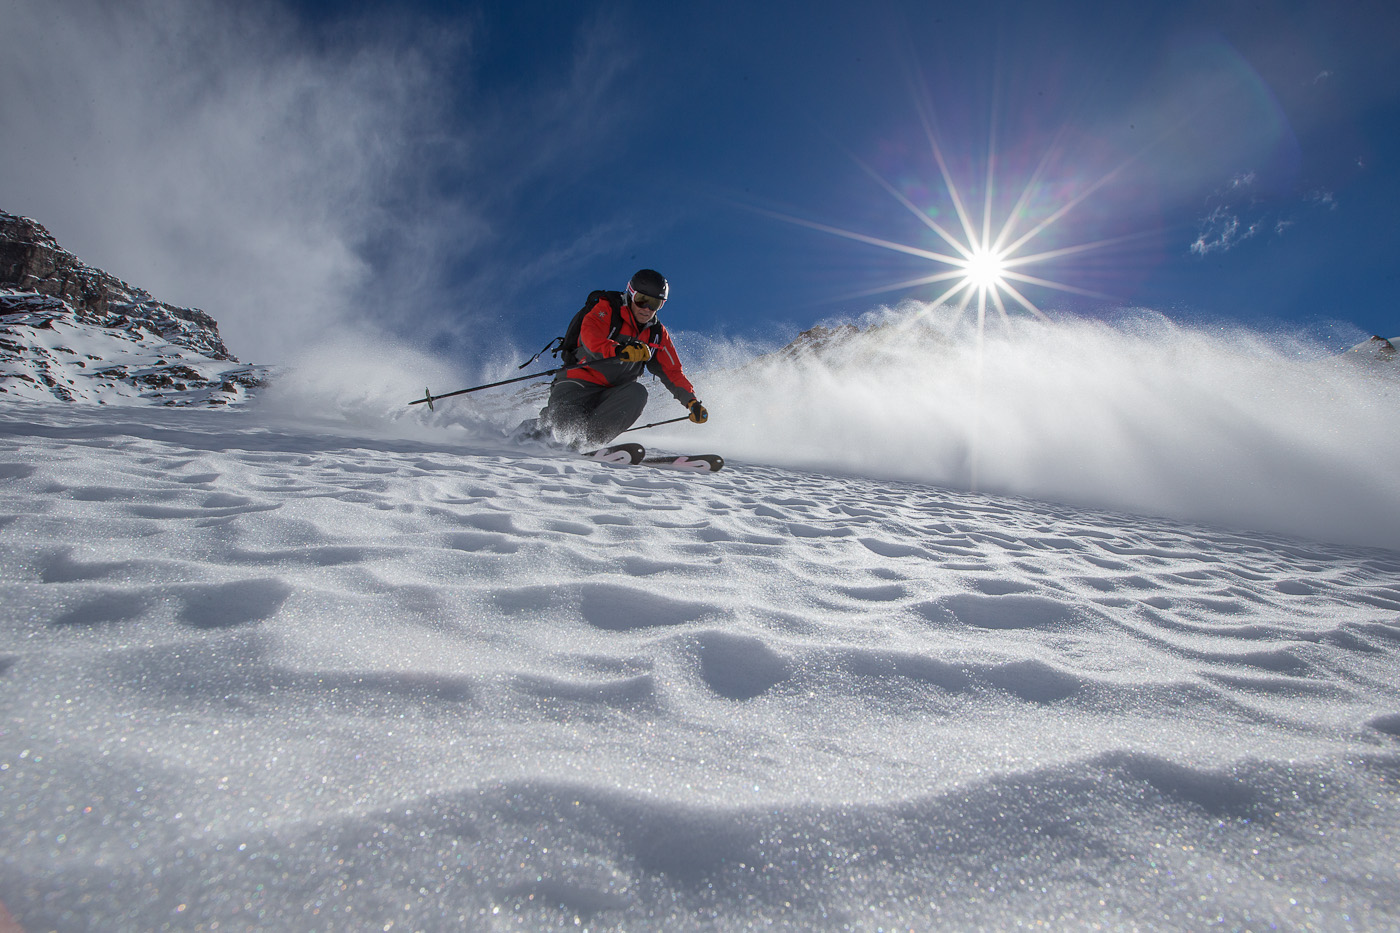 Photo: Despite a record low snow year in 2014, Reggie Crist, still manages to find untracked powder around every corner. The massive relief found in the Andes provides ample opportunity to find the best skiing on the planet during the month of August.